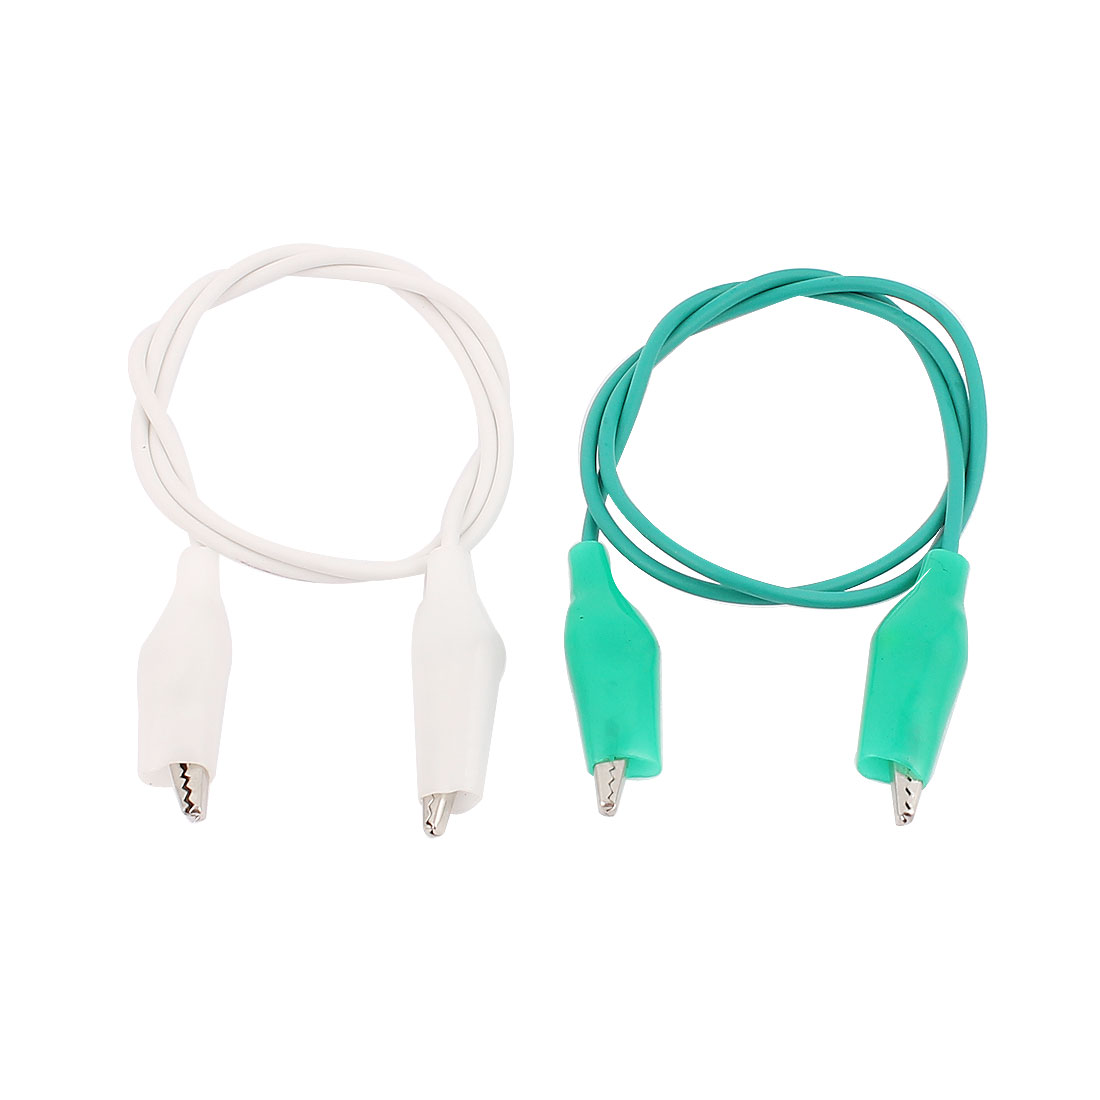 2pcs Green White Insulated Double Ended Alligator Roach Clip Test Leads Probe Wire Cable 47cm